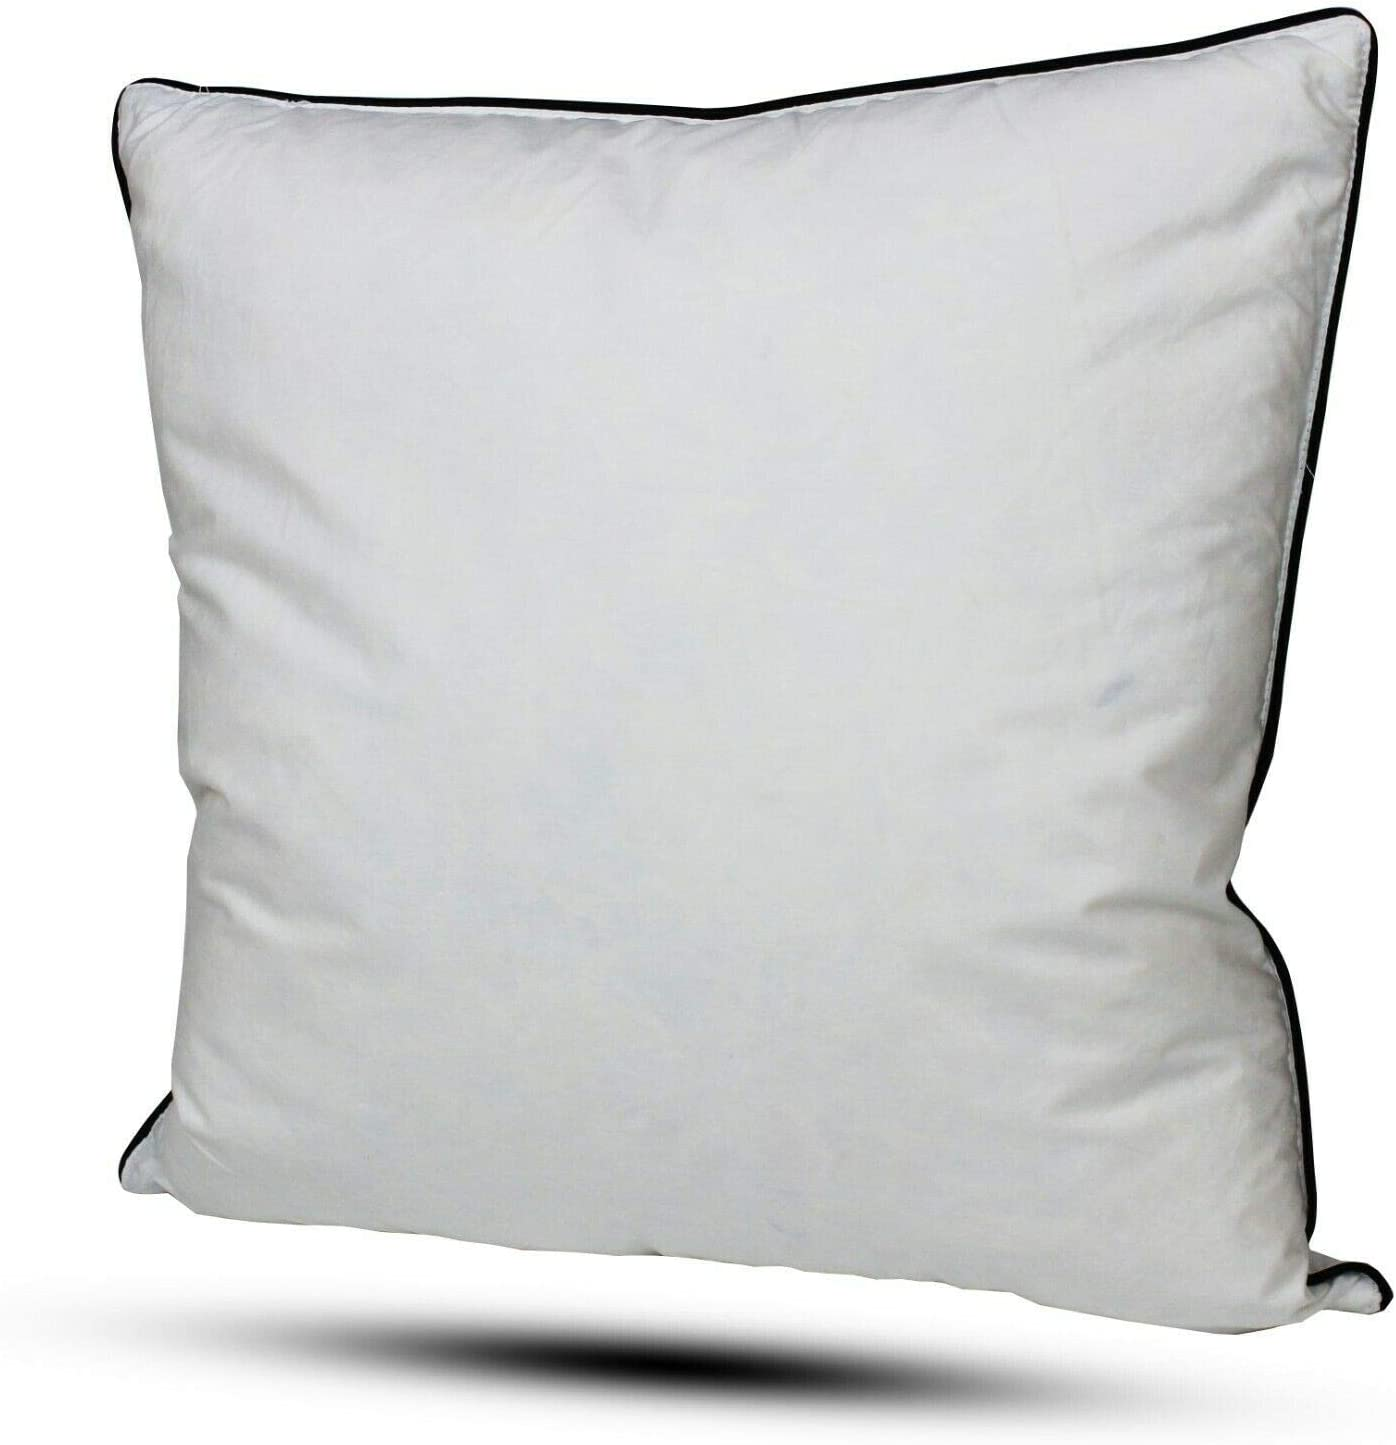 """10 x 20/"""" x 20/"""" Duck Feather Cushion Pads White feathers in 100/% Cotton Cover"""